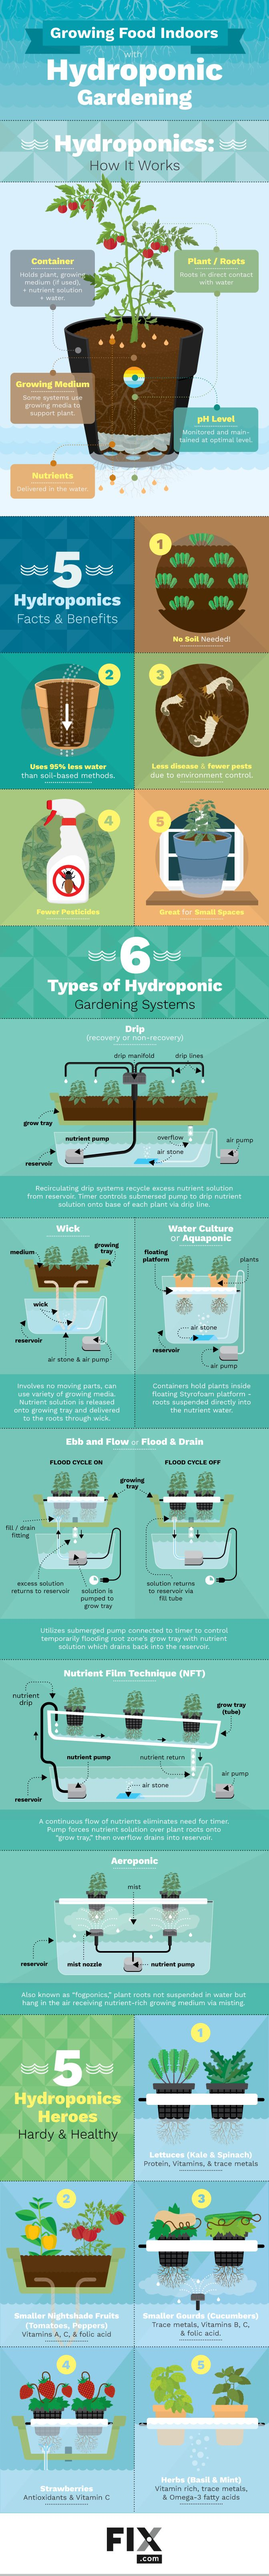 Growing plants in nutrient-rich water, instead of soil, is known as hydroponic gardening. Learn why this form of agriculture is beneficial and learn about some of the different hydroponic systems you can use.